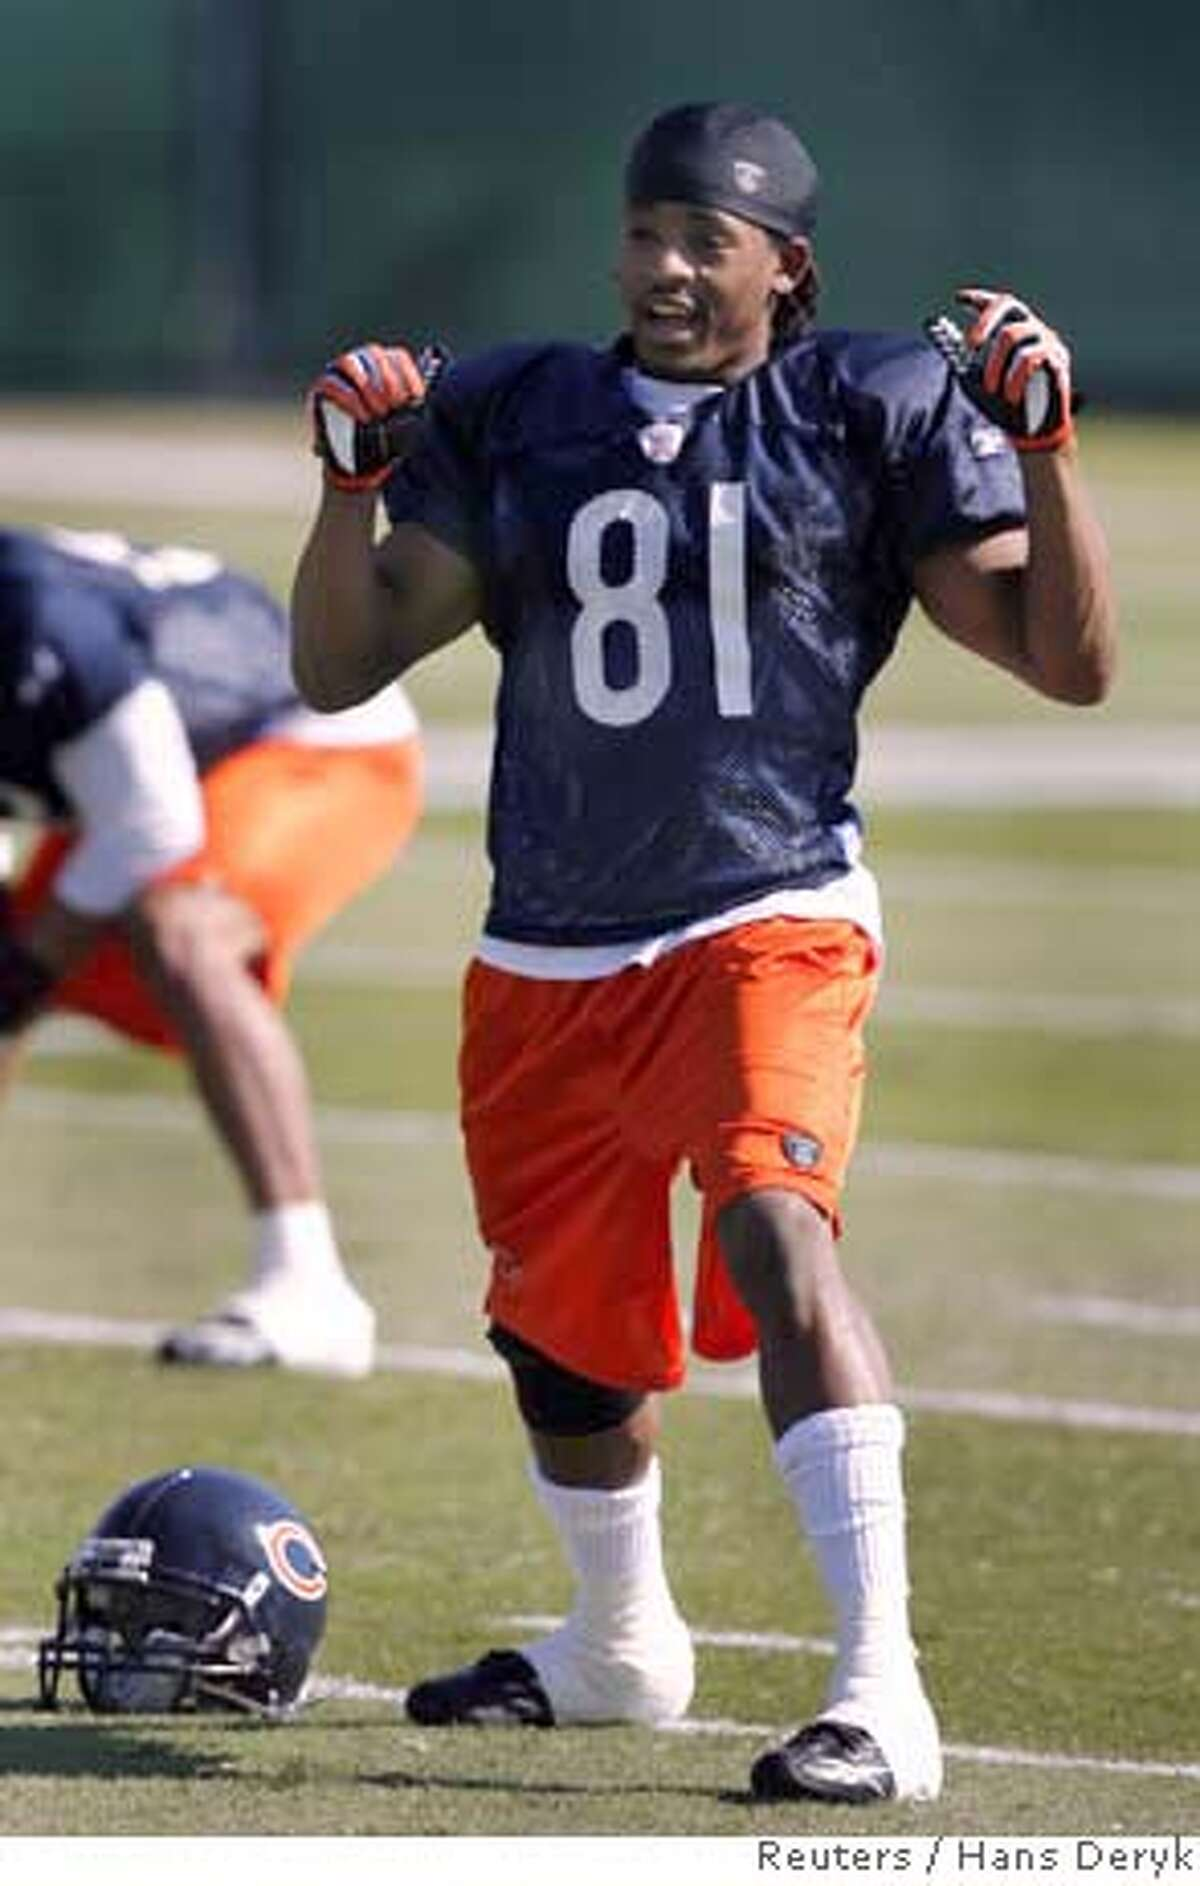 Chicago Bears Rashied Davis laughs as he stretches during practice at the University of Miami campus in Coral Gables January 31, 2007. The Bears continued their preparation for Super Bowl XLI against the Indianapolis Colts on February 4. REUTERS/Hans Deryk (UNITED STATES)